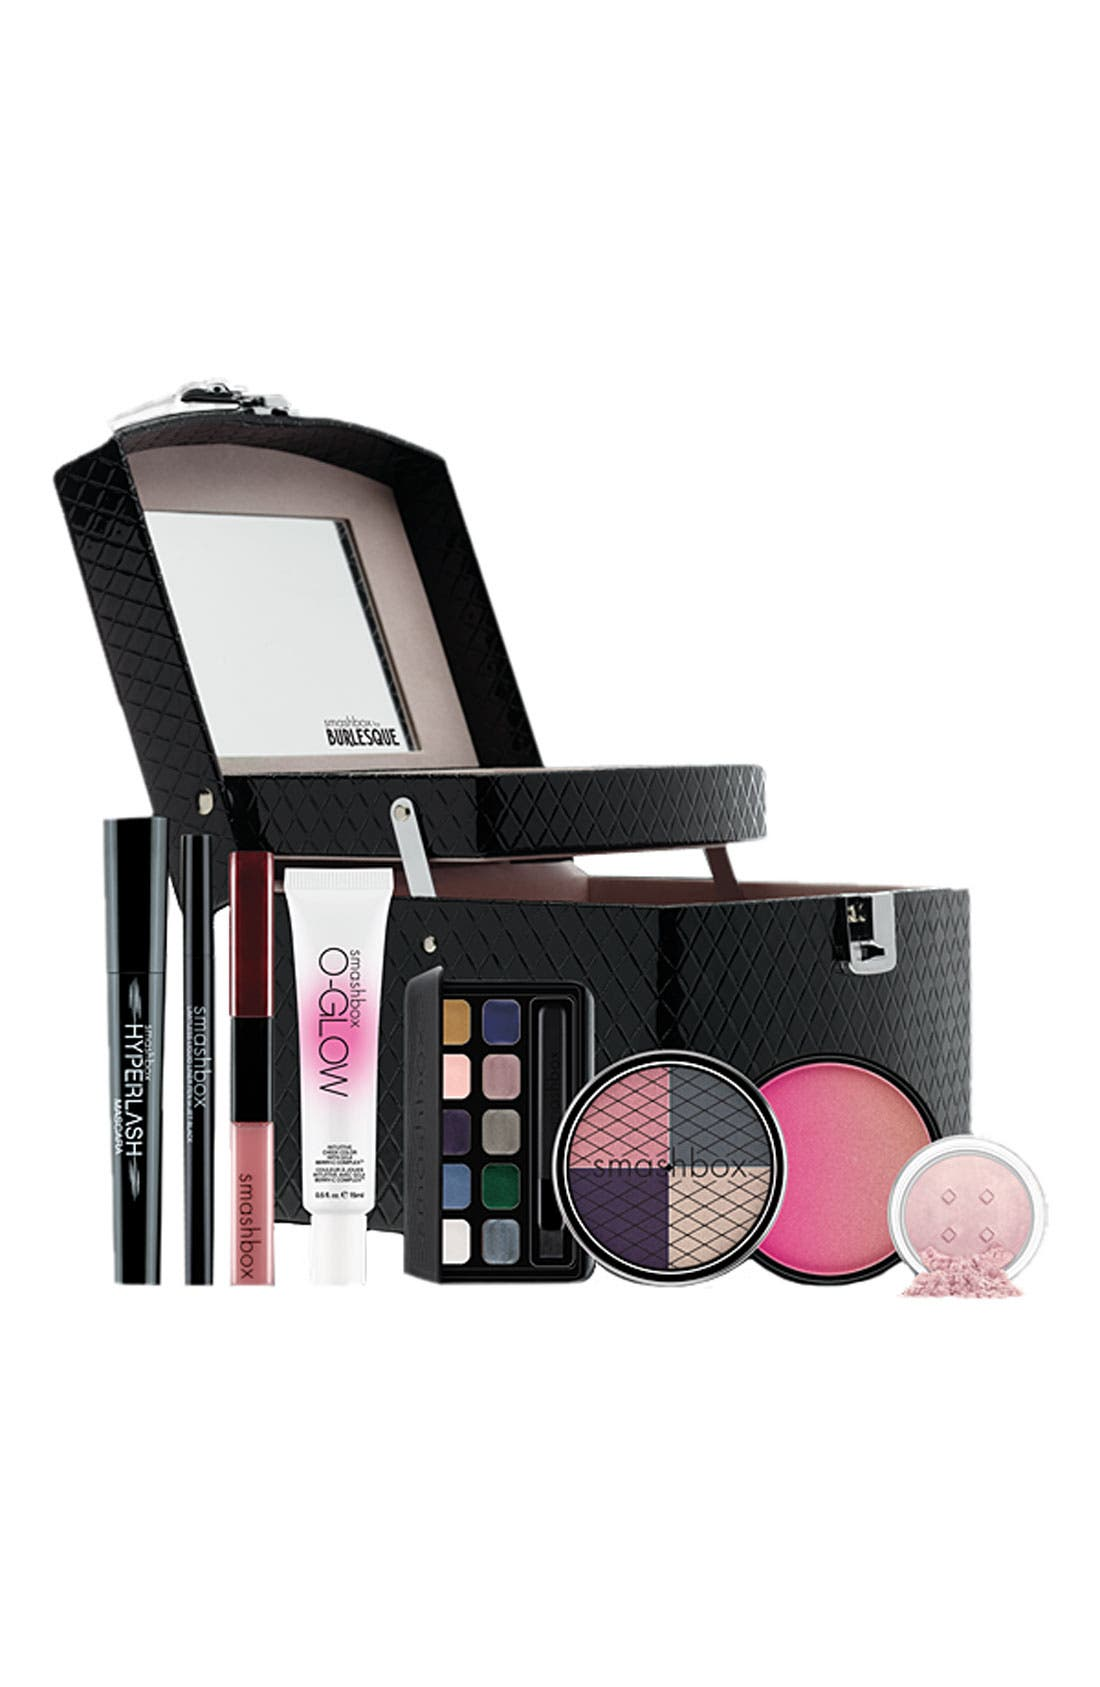 Alternate Image 1 Selected - Smashbox 'Burlesque' Beauty Collection & Train Case (Nordstrom Exclusive) ($250 Value)